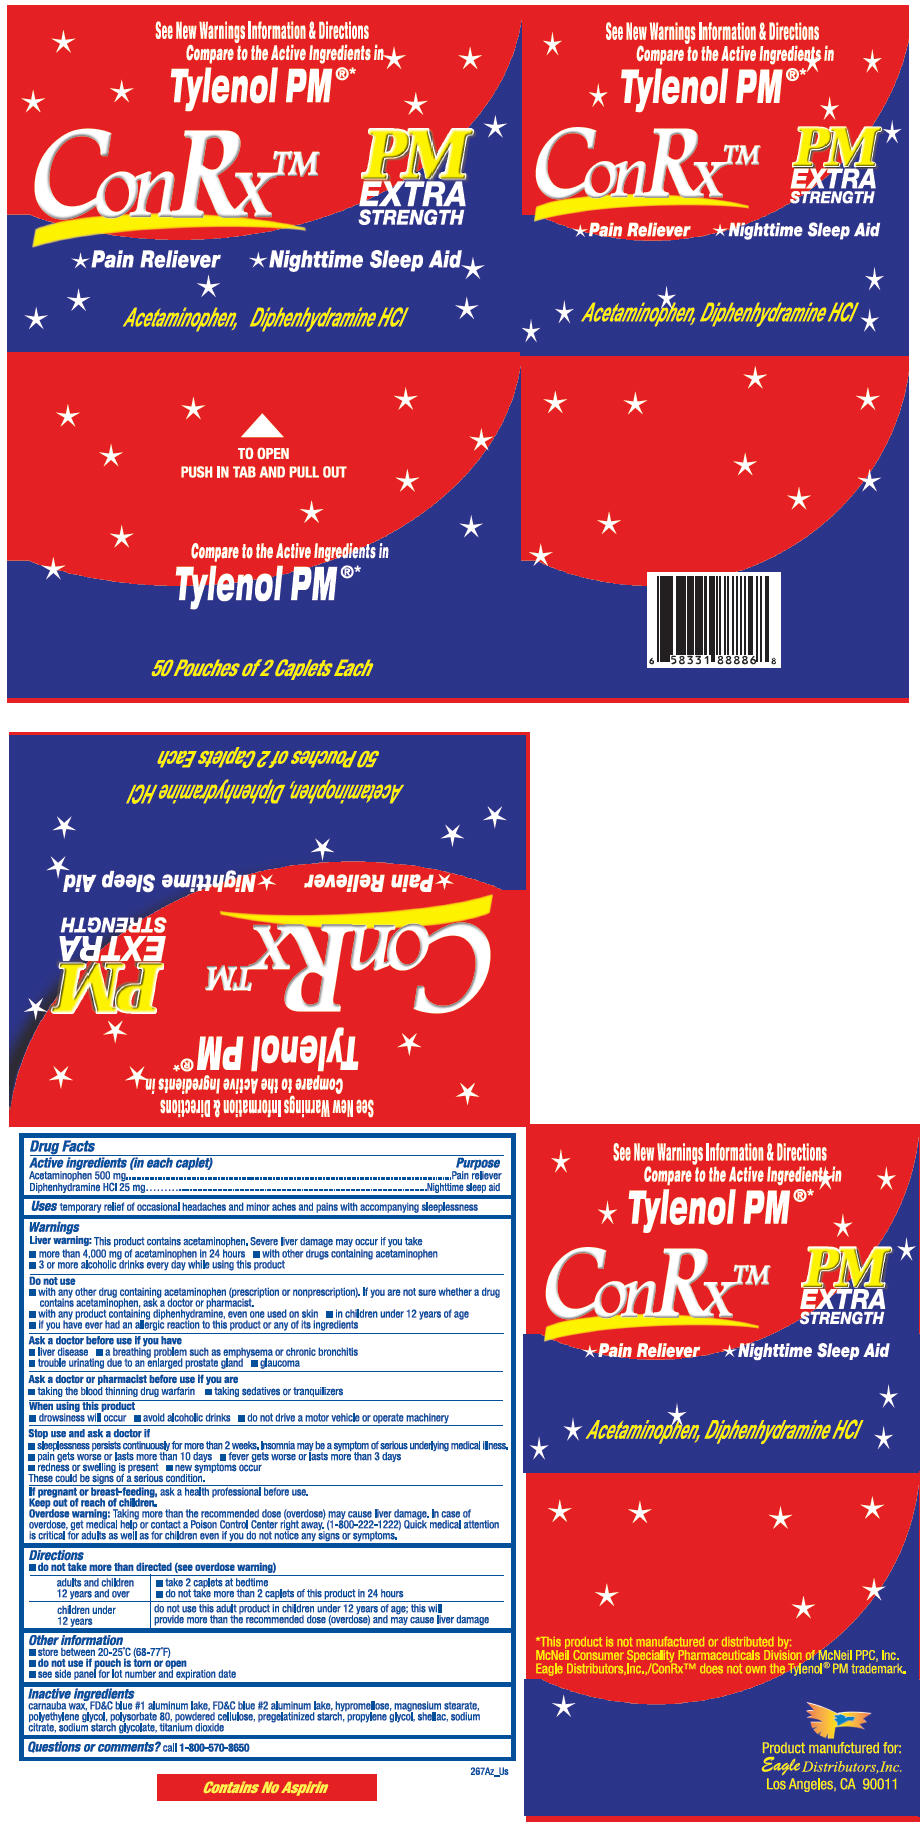 Conrx Pm (Acetaminophen And Diphenhydramine Hydrochloride) Tablet [Eagle Distributors,inc.]